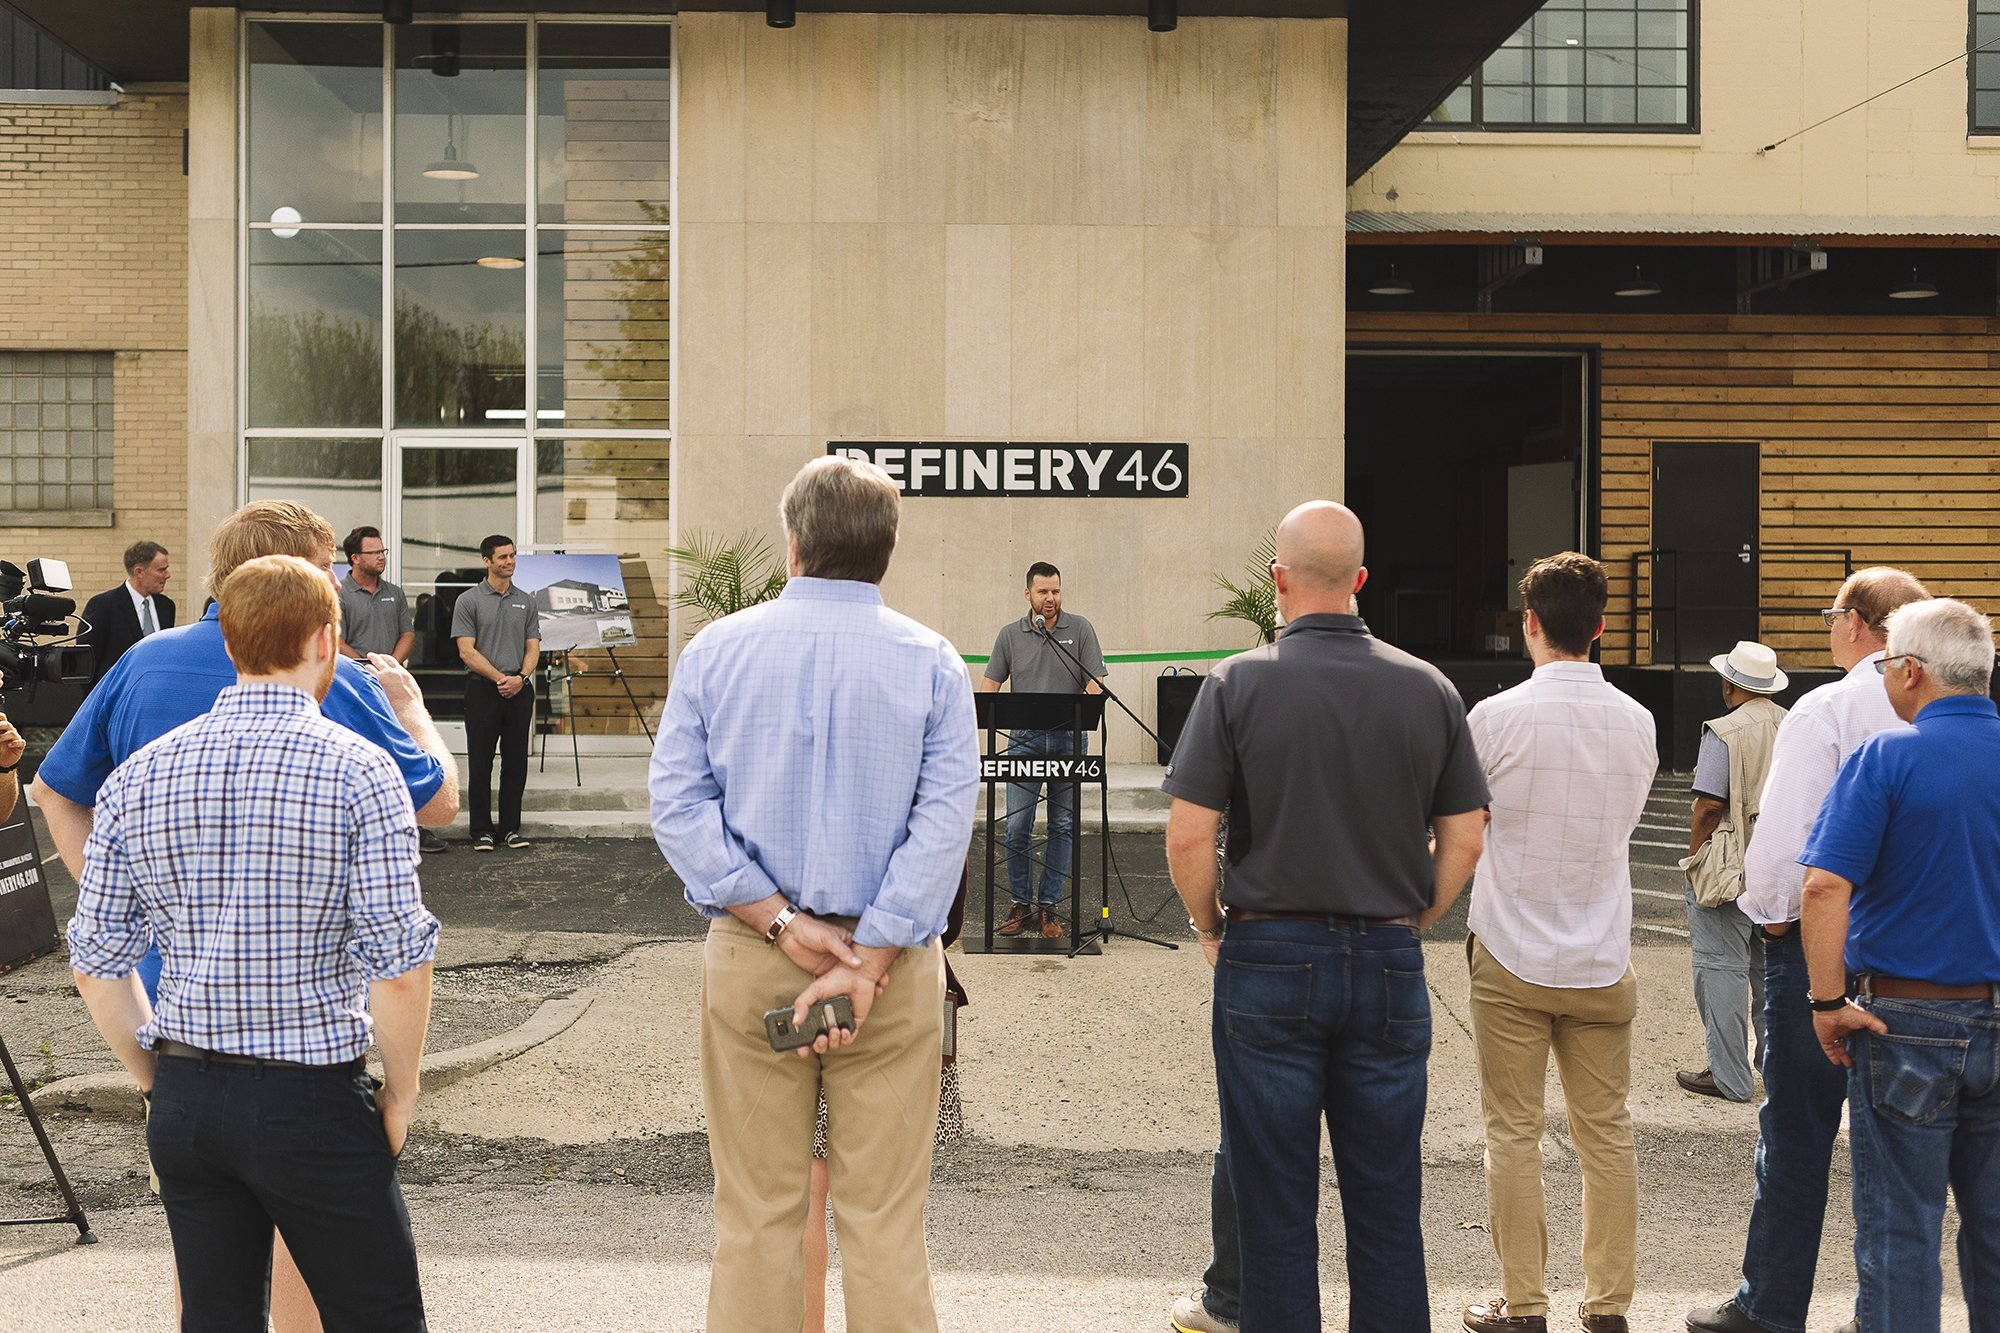 Corporate Event Photography - Refinery 46 Ribbon Cutting - Indianapolis Mayor Hogsett - 9